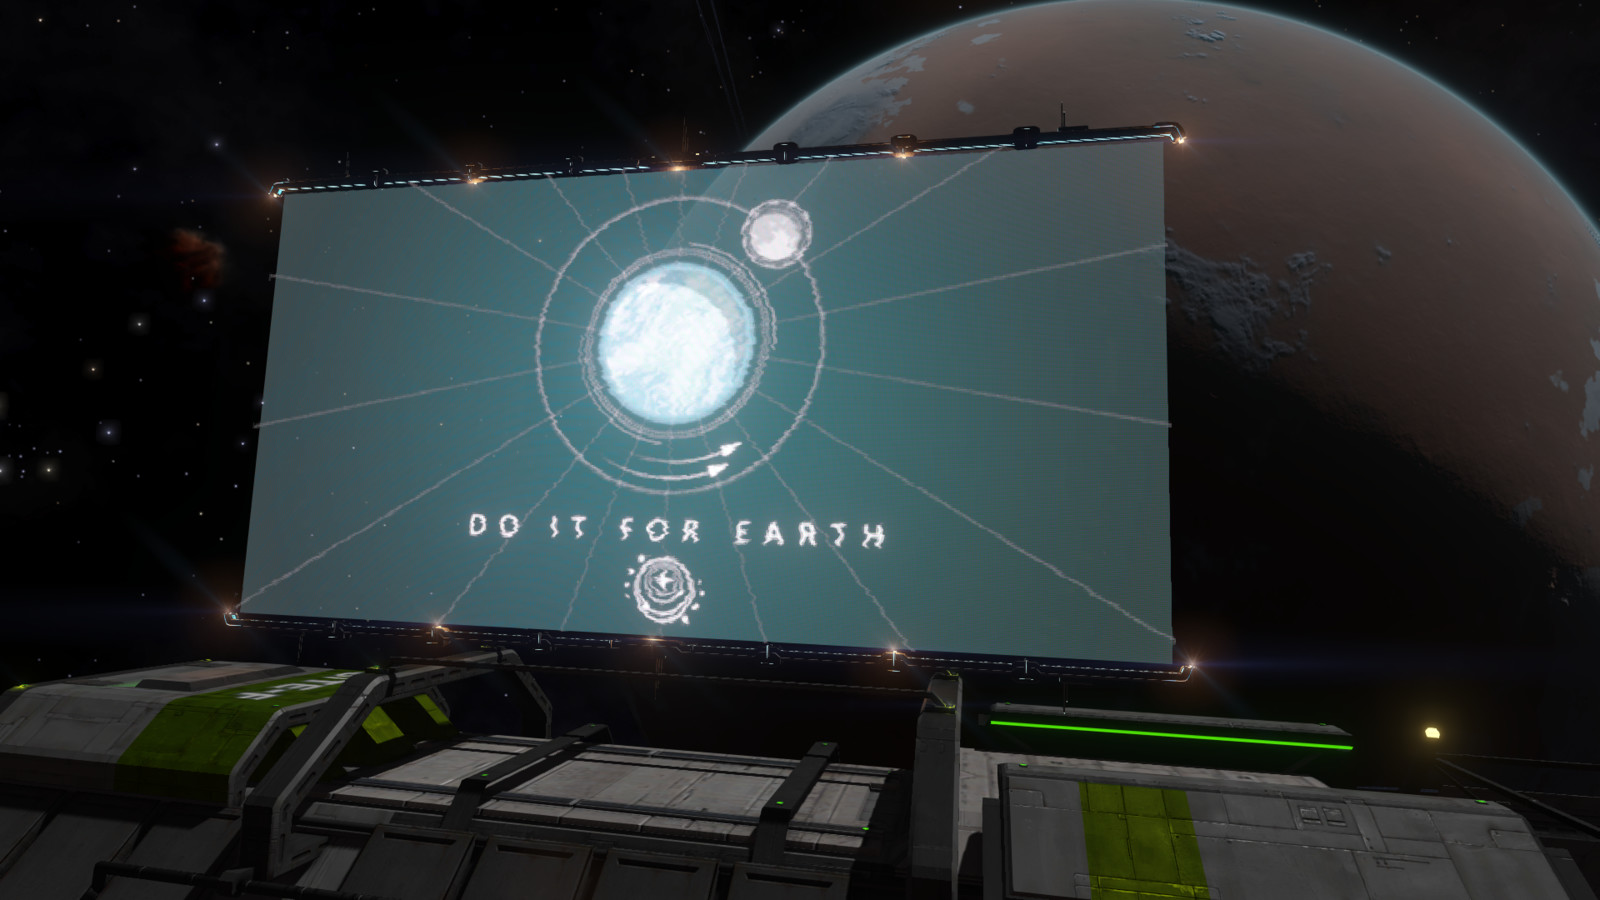 Do it for Earth, in game.